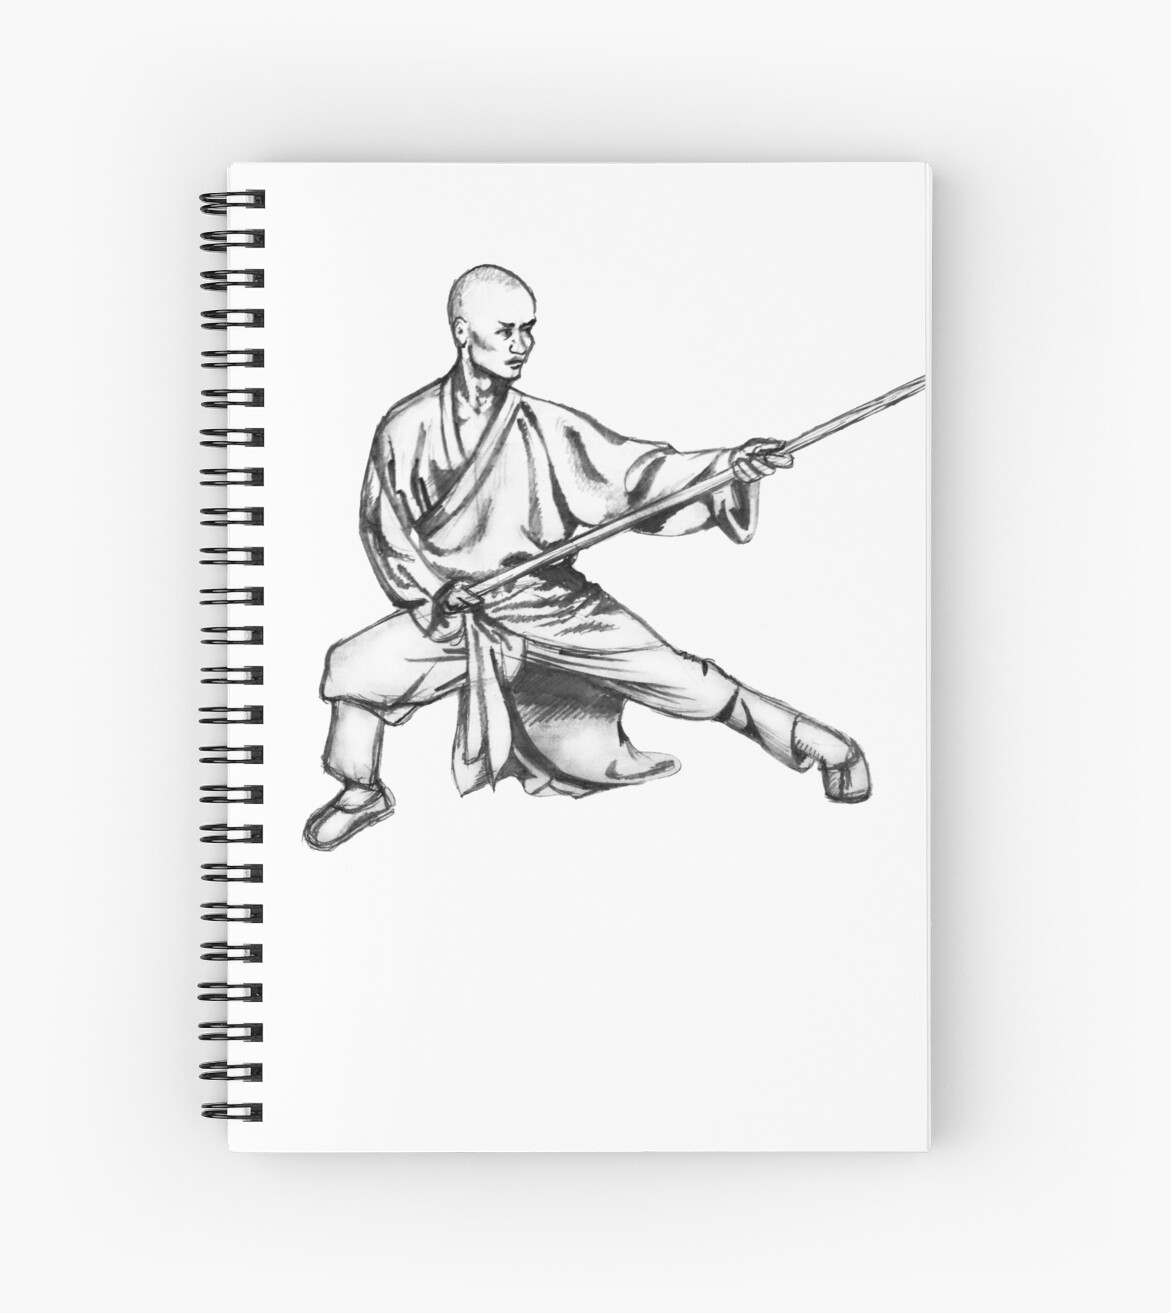 cuadernos de espiral shaolin warrior monk kung fu wushu de chris serong redbubble. Black Bedroom Furniture Sets. Home Design Ideas